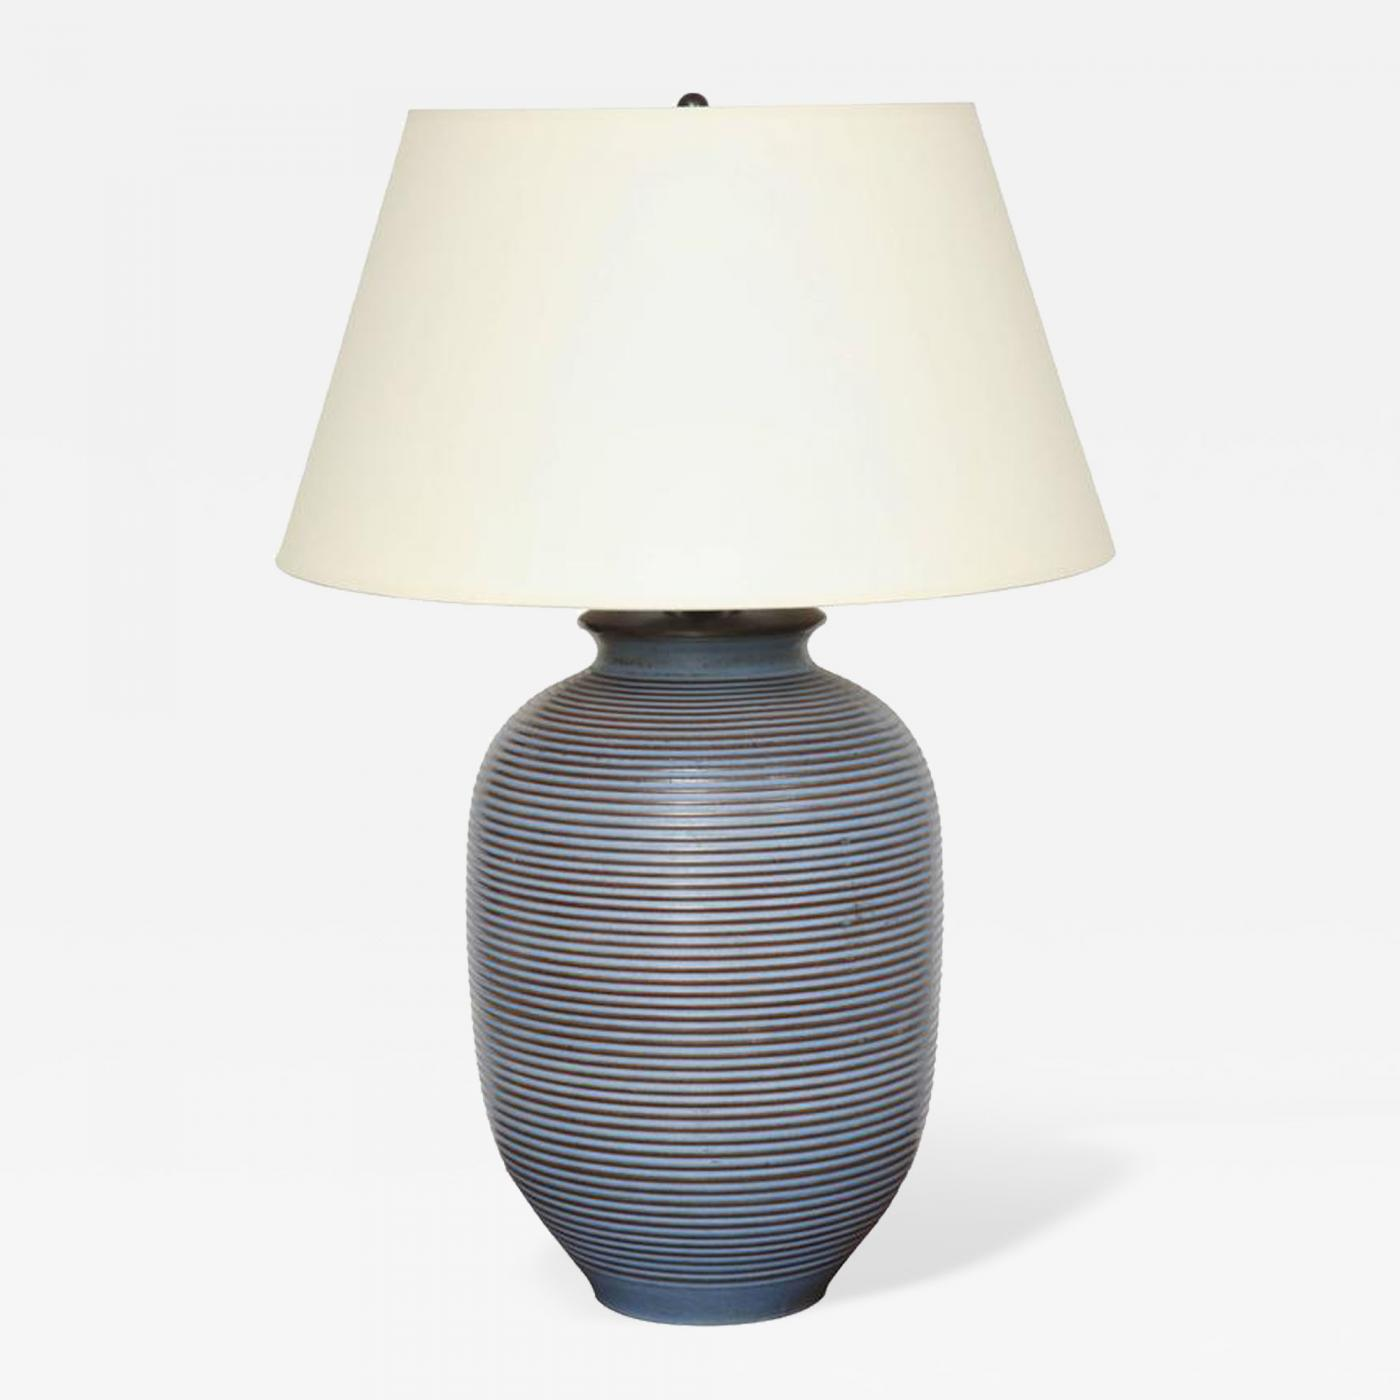 Large Blue And Brown Ceramic Table Lamp With Stripes